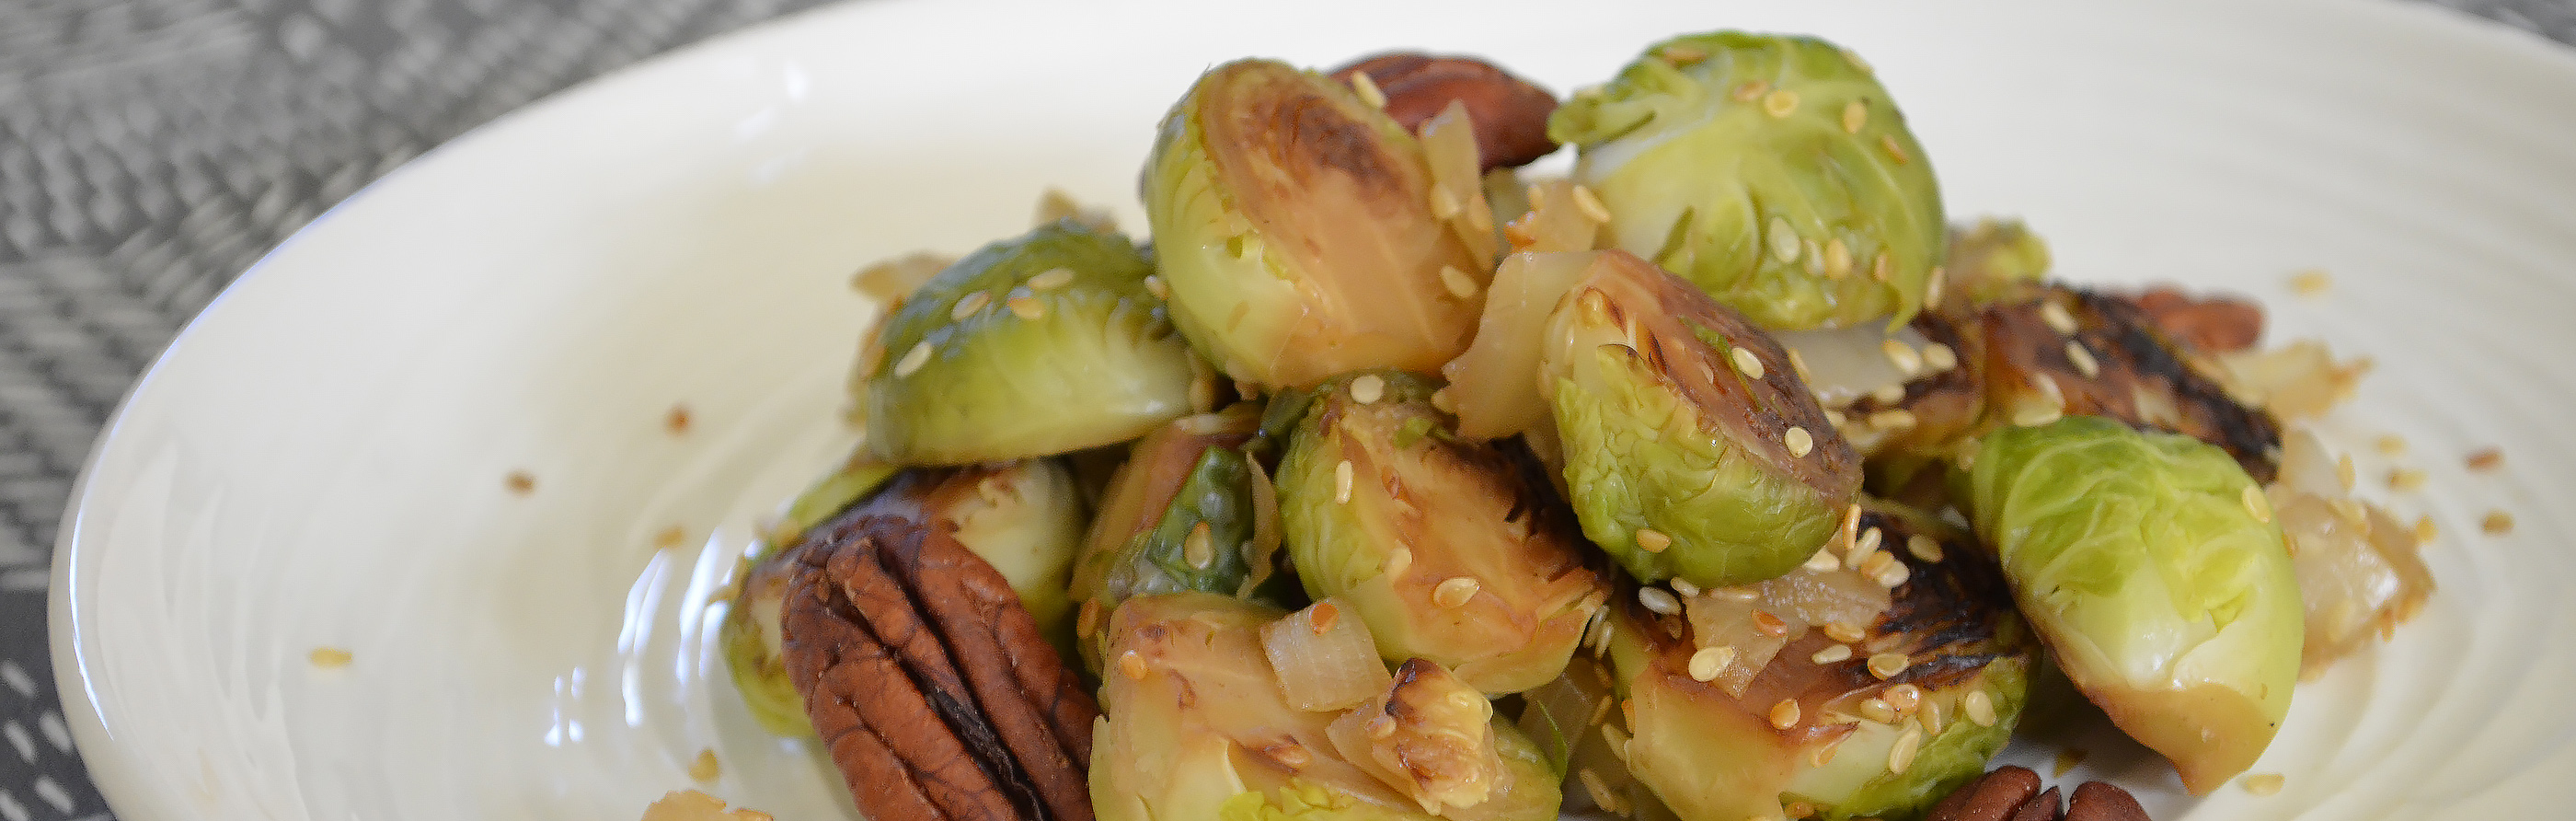 Sautéed Brussels Sprouts with Caramelized Onions